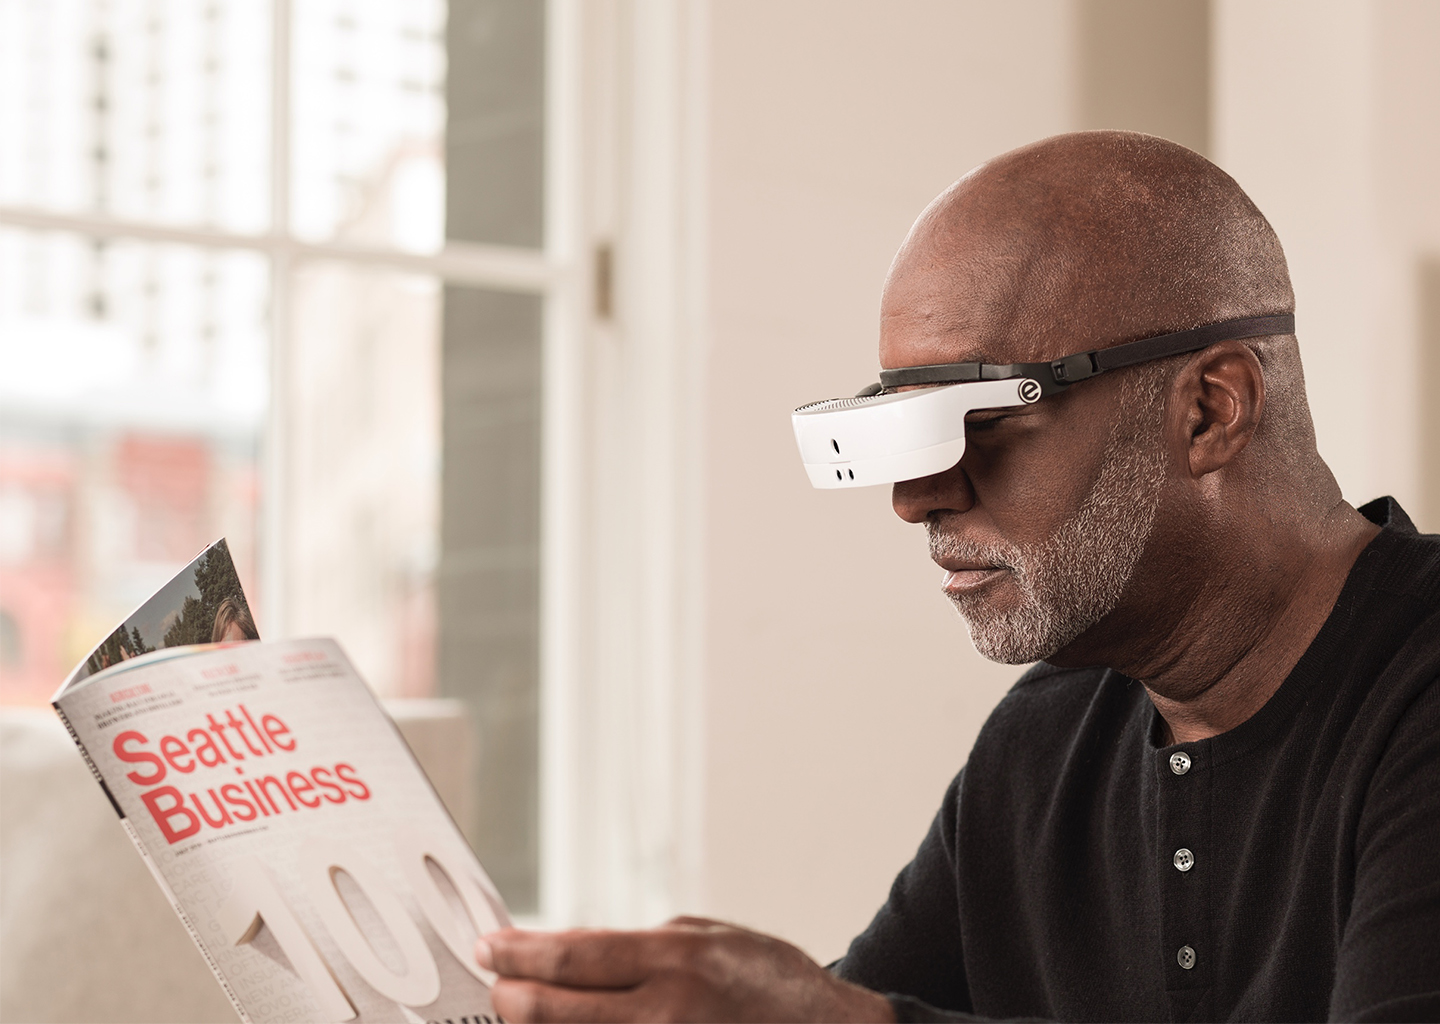 Senior black man wearing eSight headset reading a magazine.